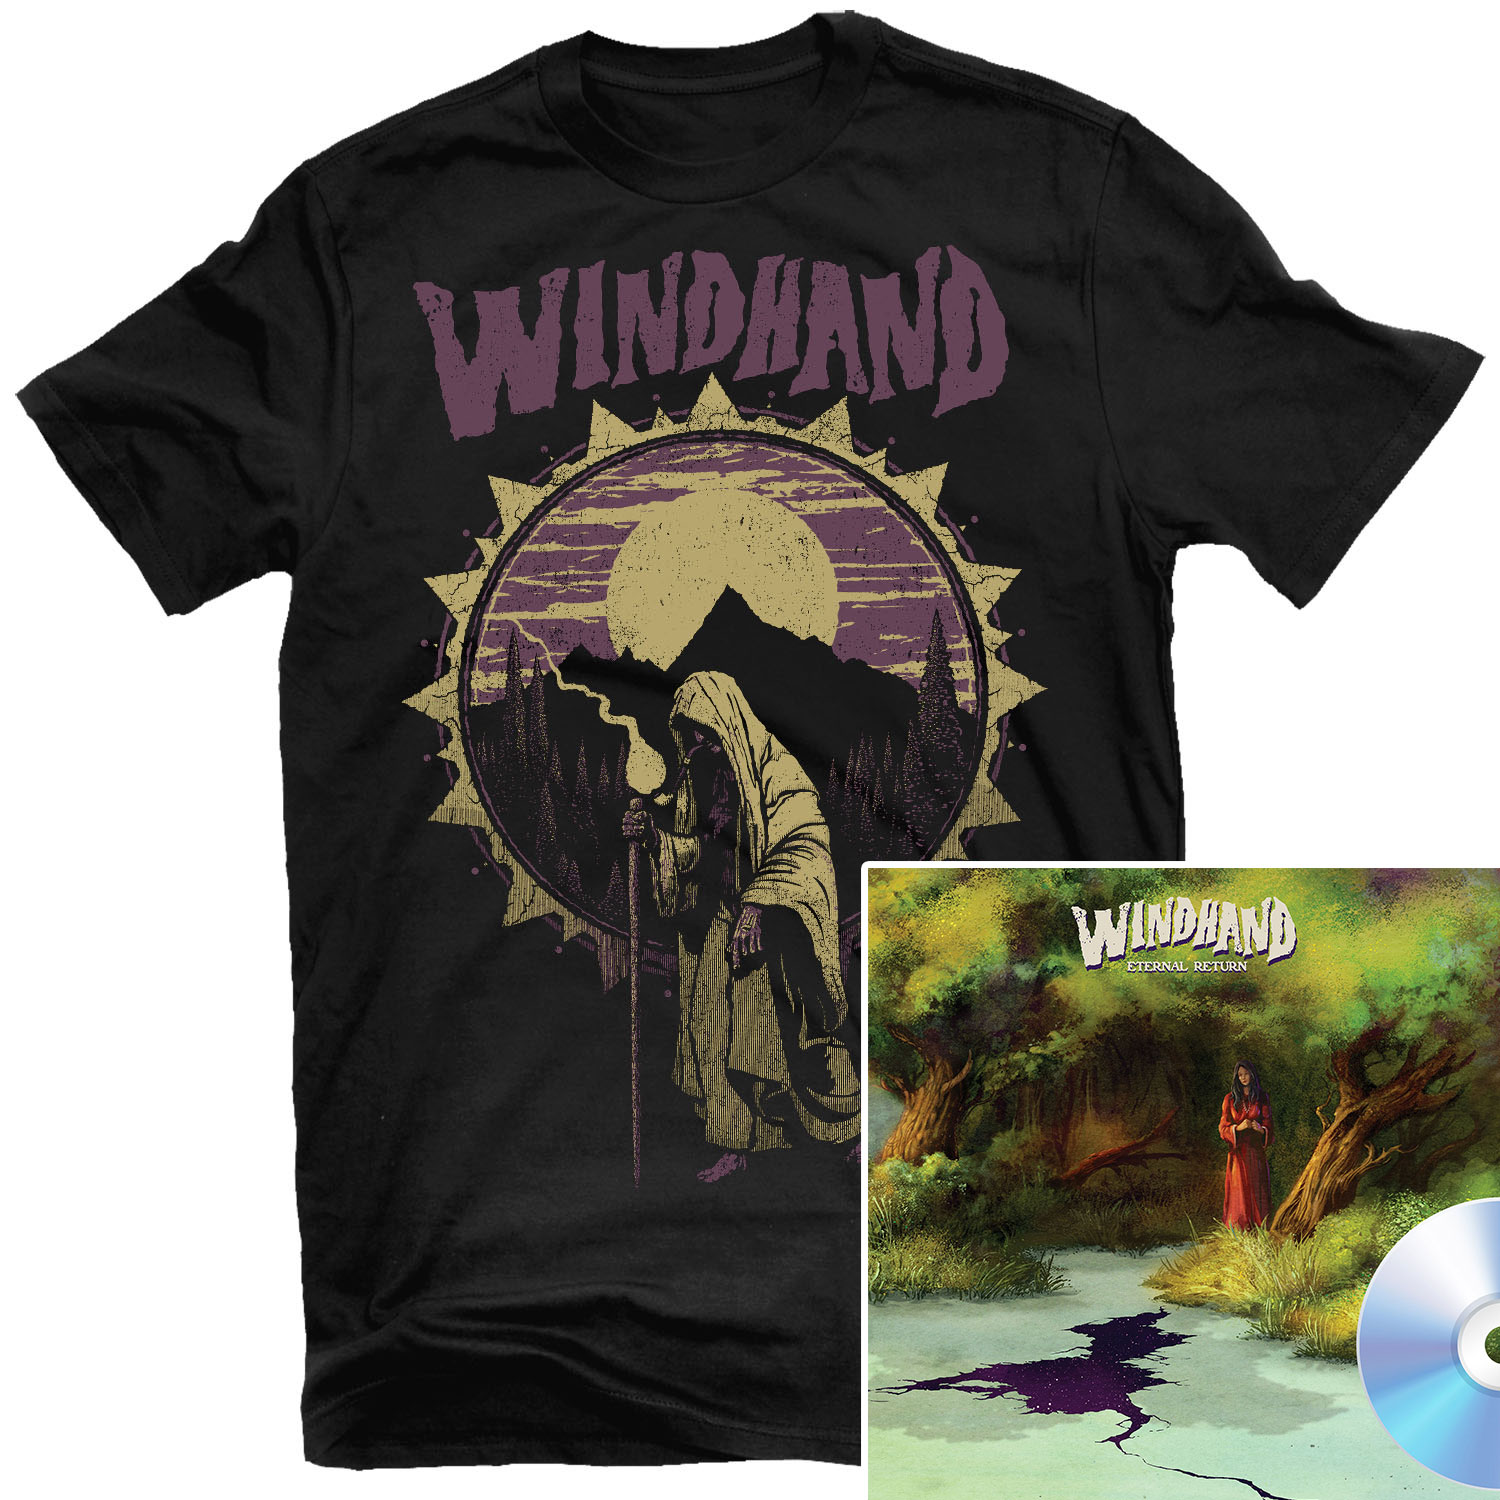 Pilgrim's Rest T Shirt + CD Bundle